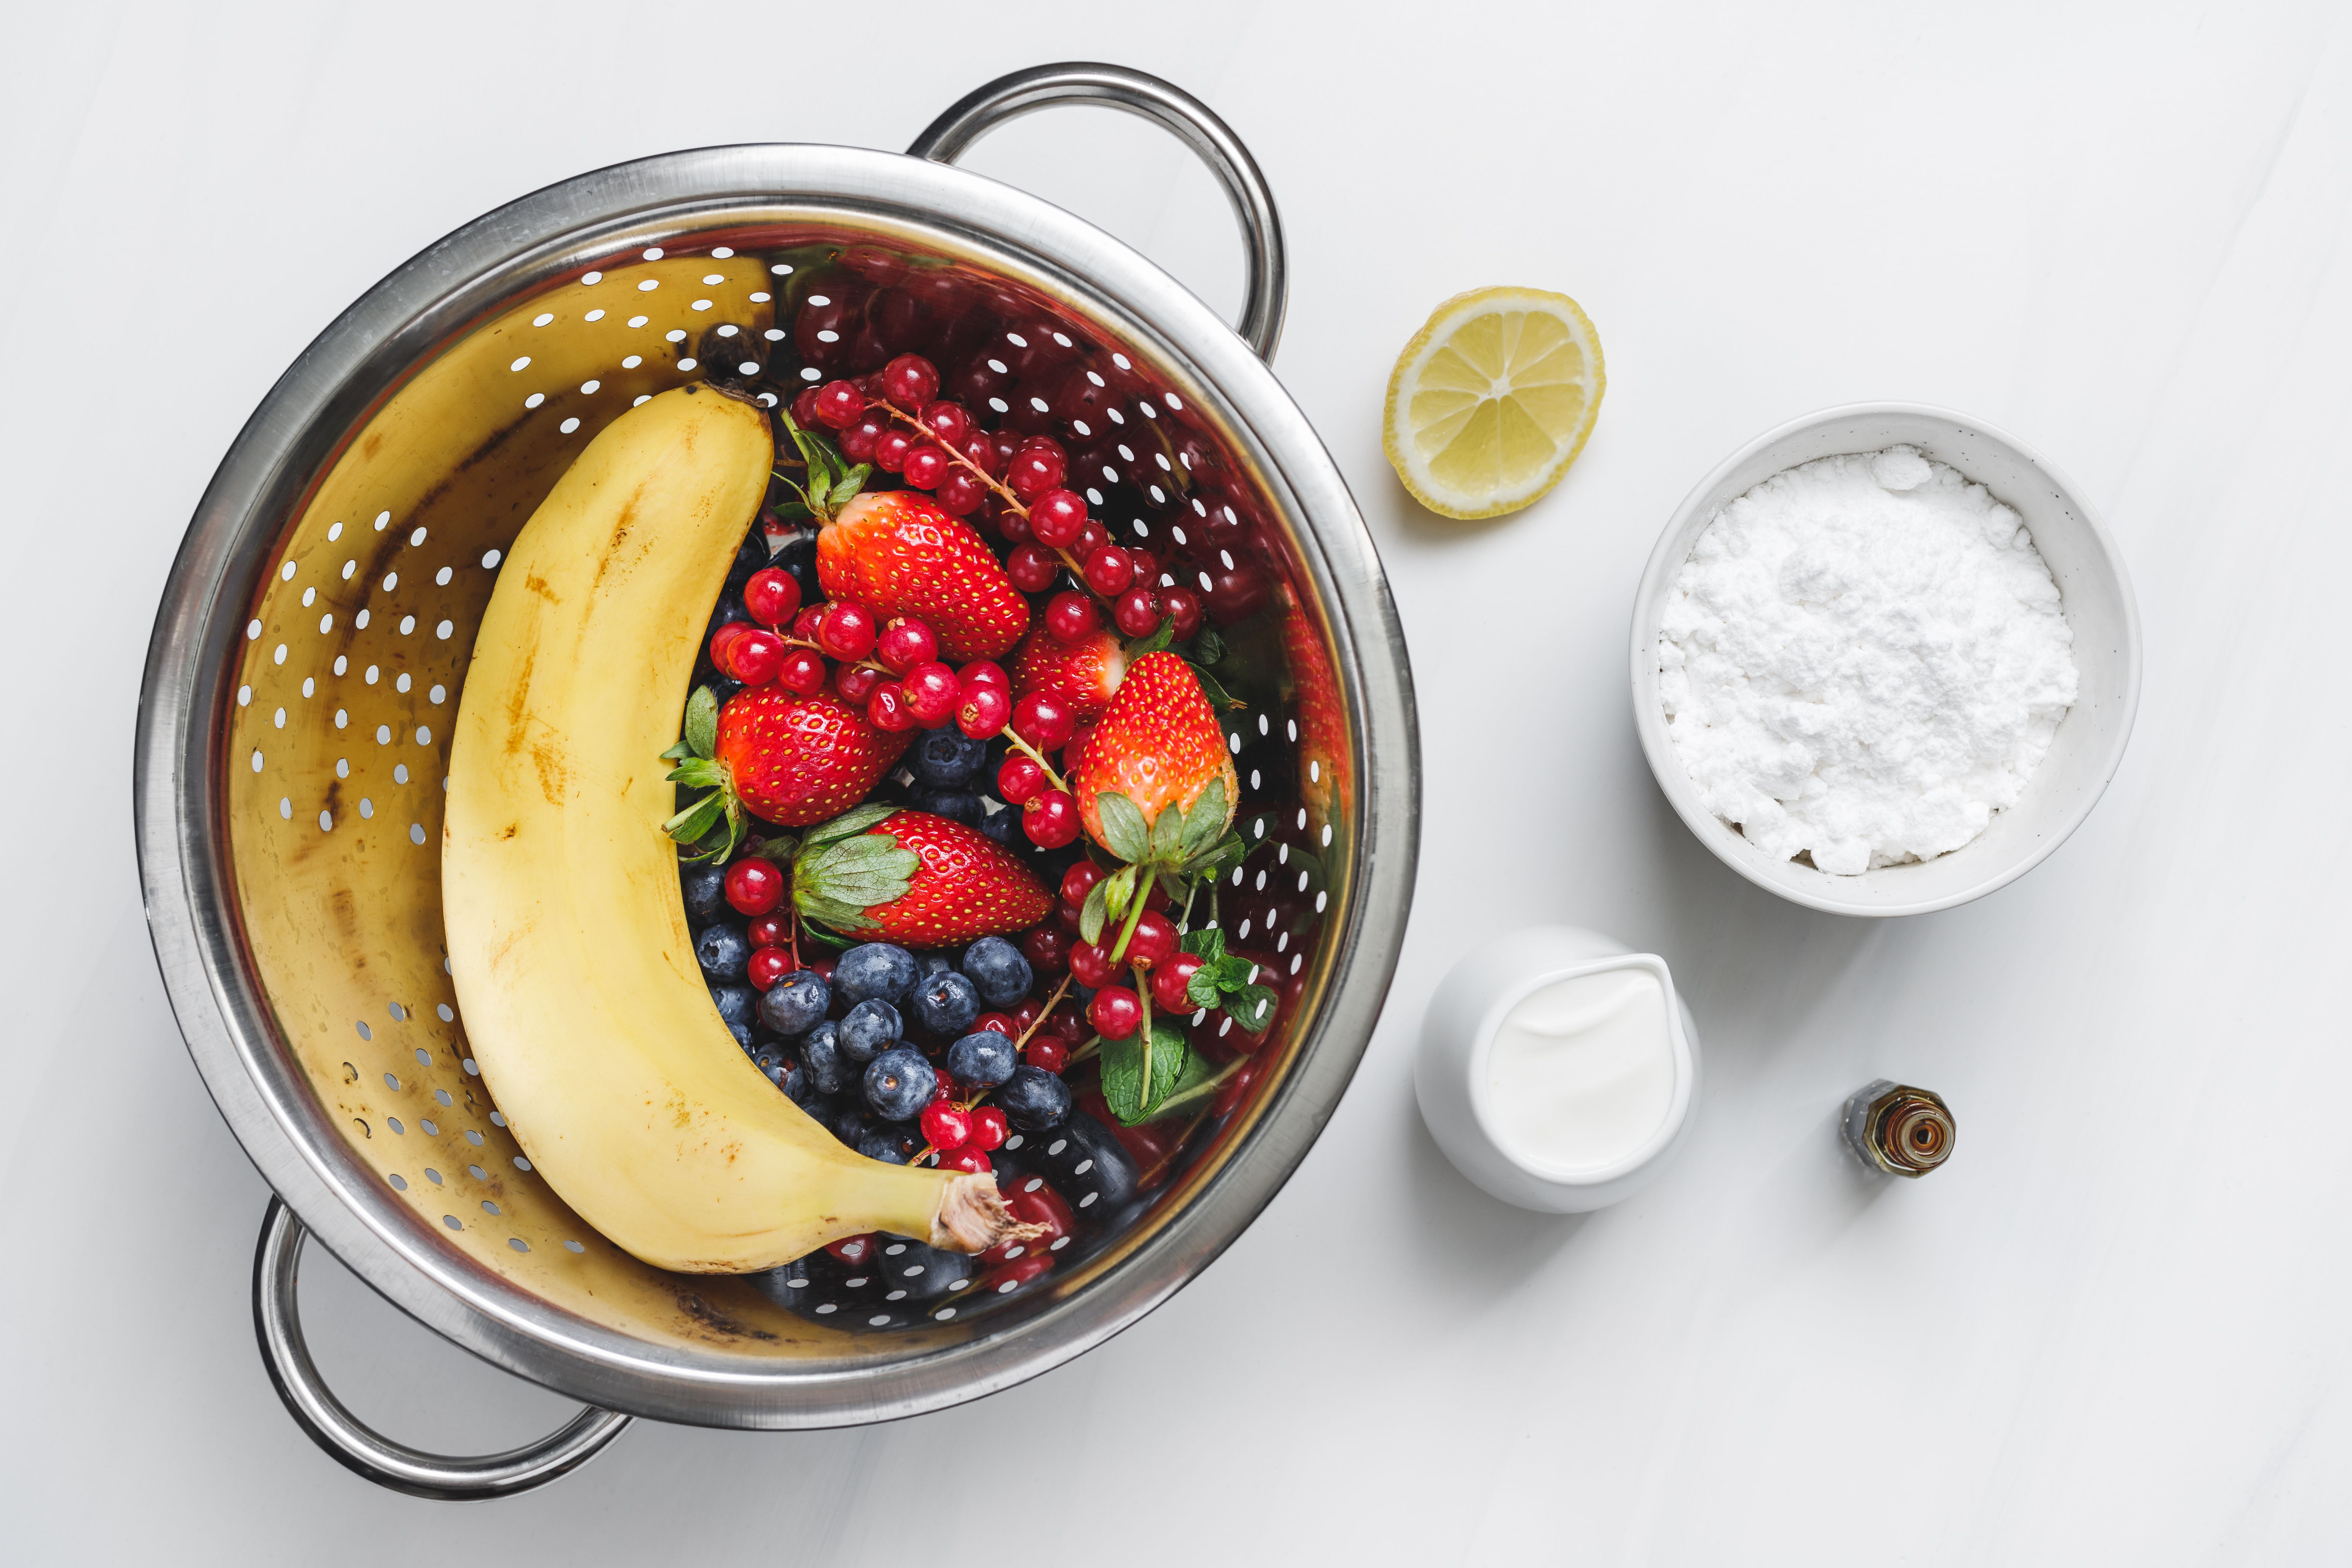 Ingredients for whipped cream and fruit garnish